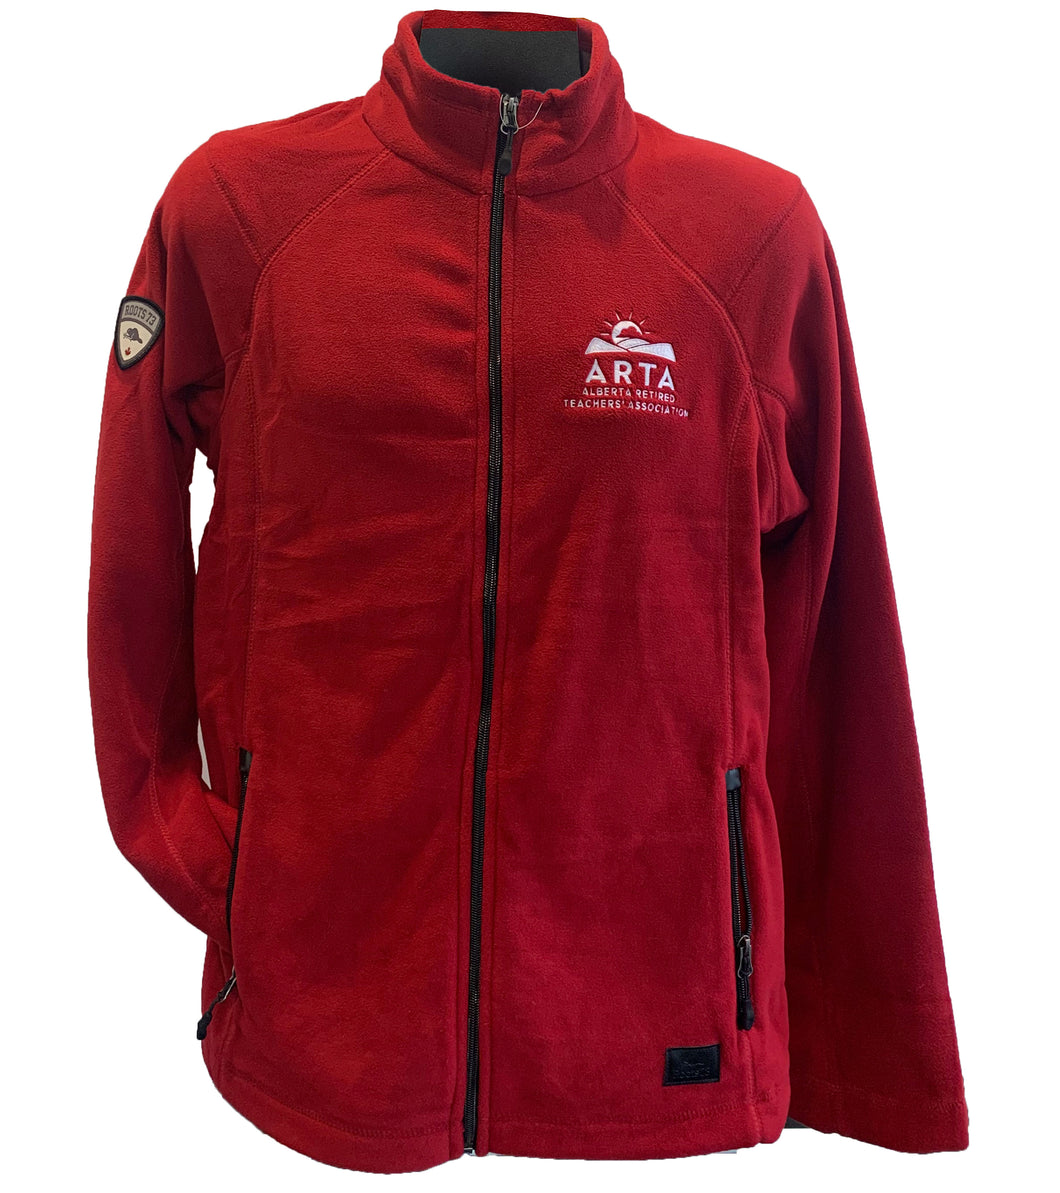 Men's Roots73 Microfleece Jacket